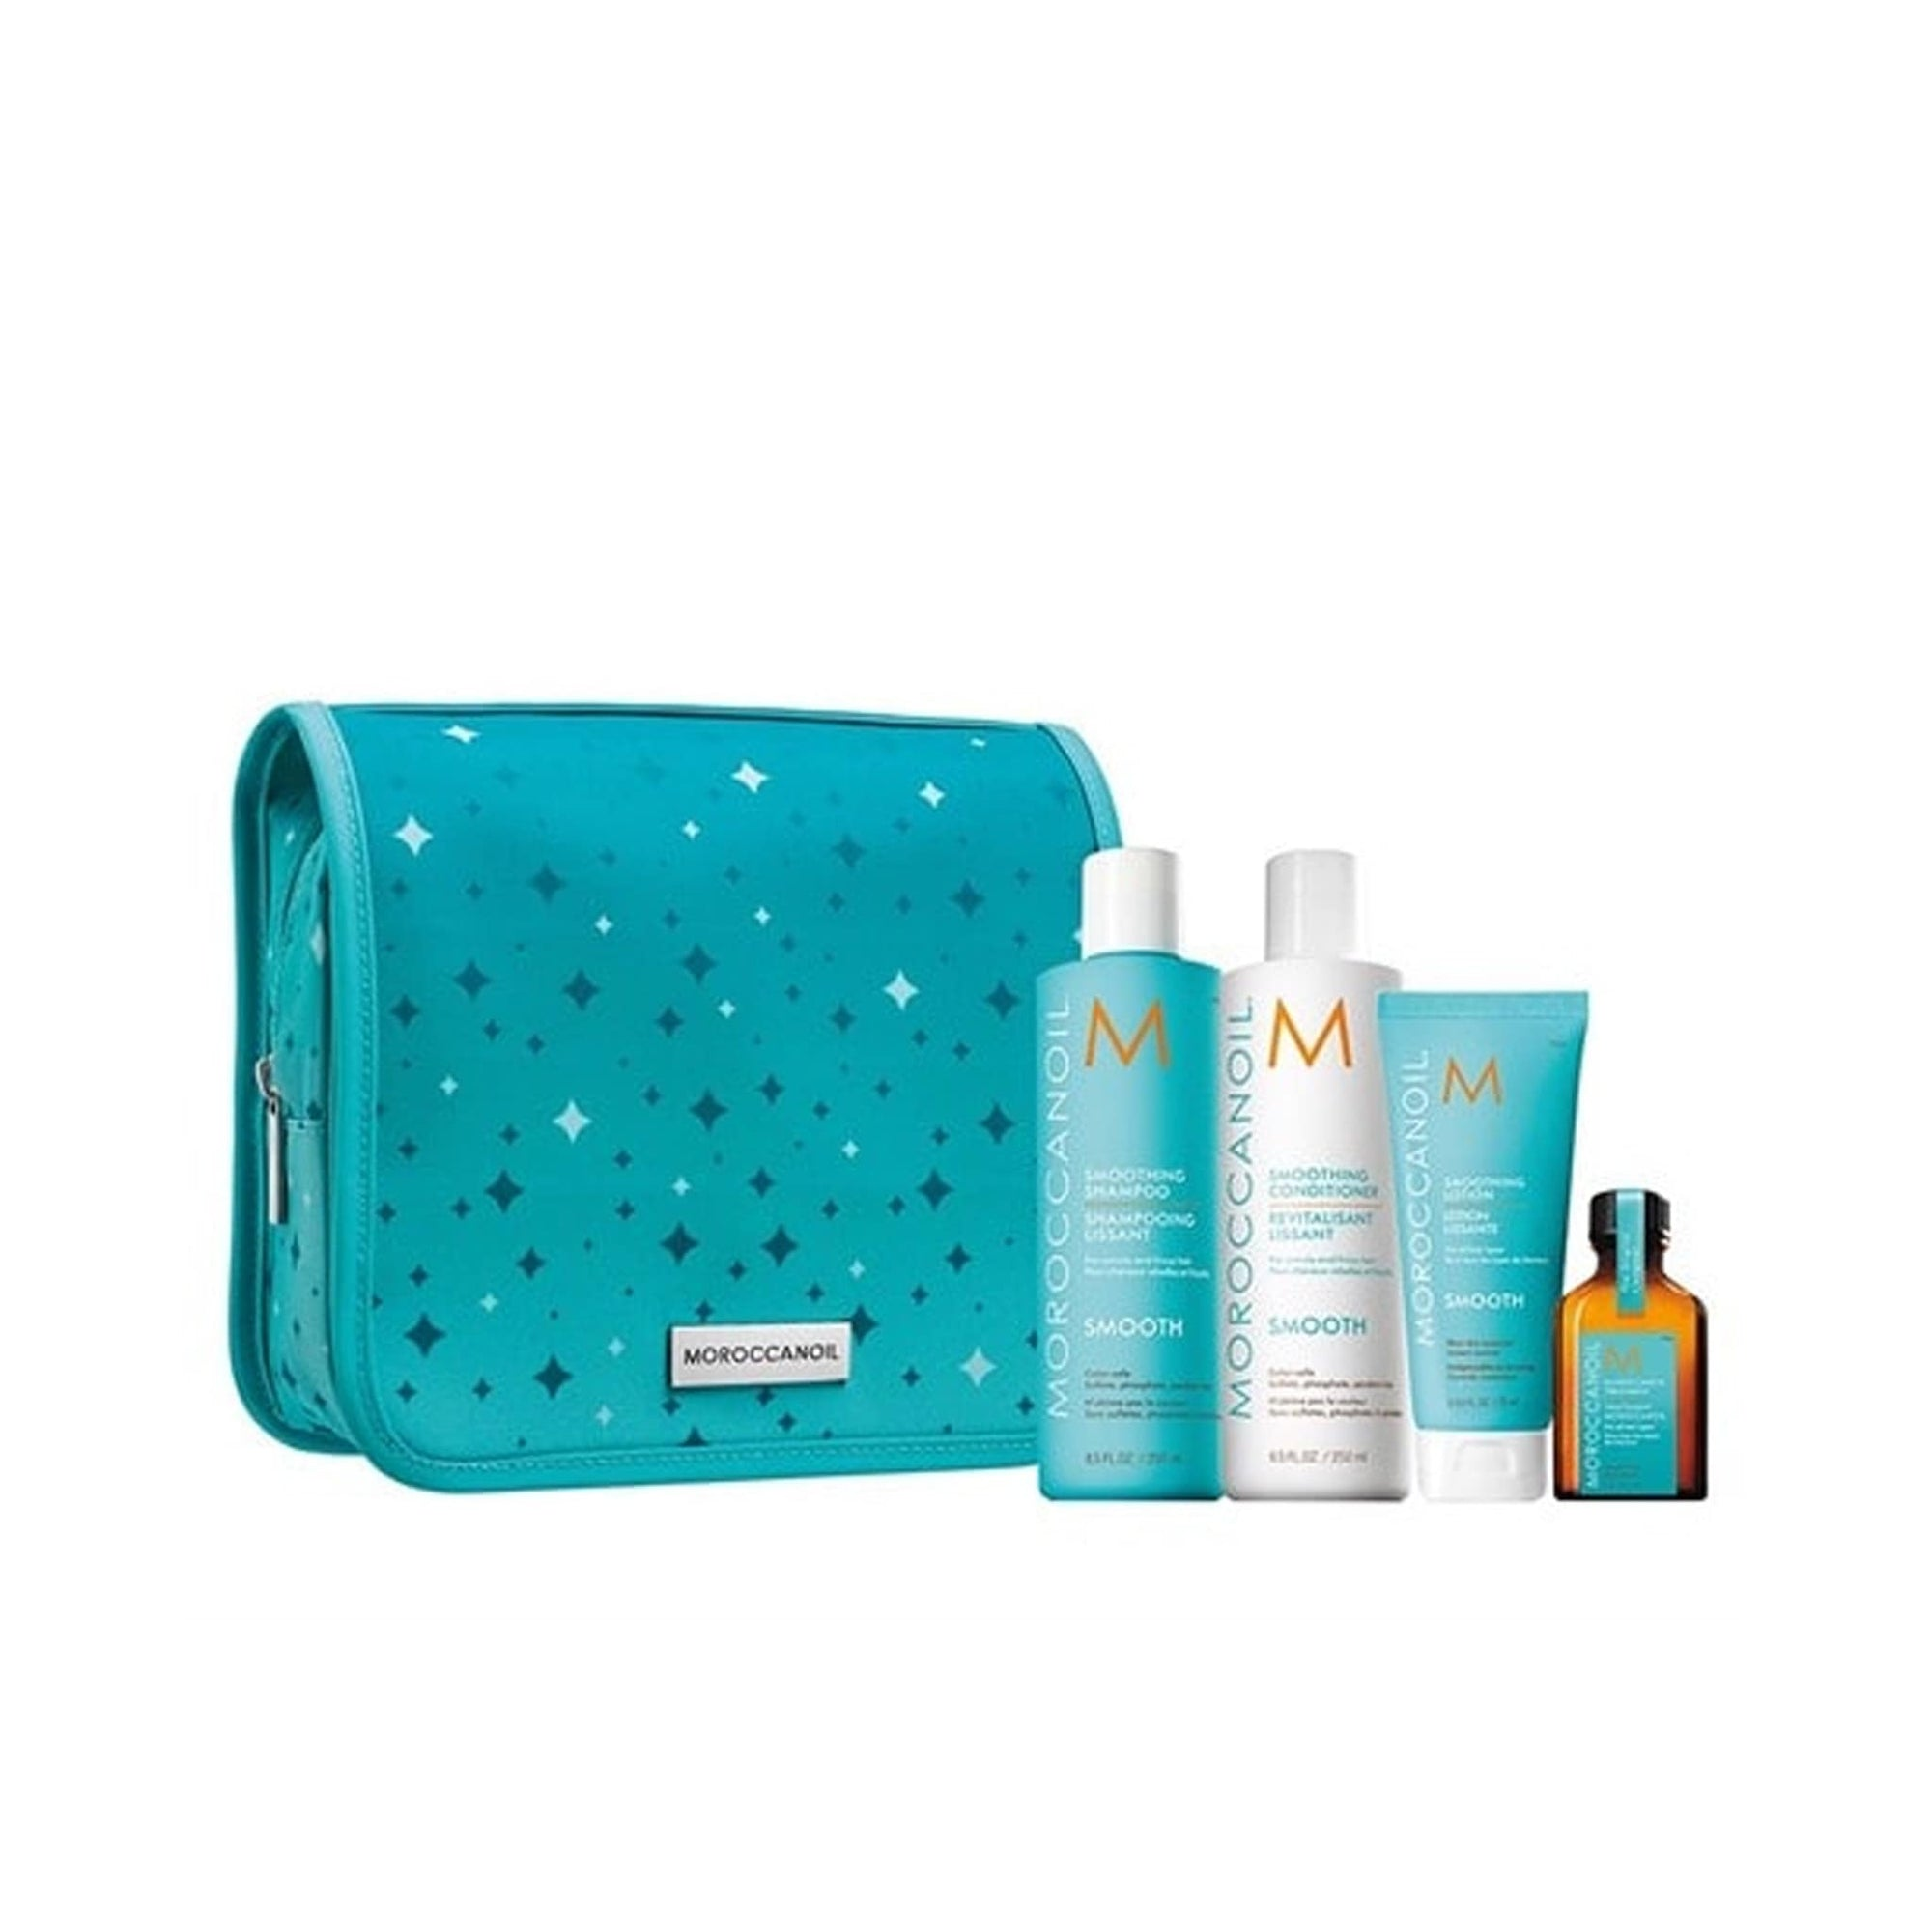 Moroccanoil Twinkle Smooth Gift Pack